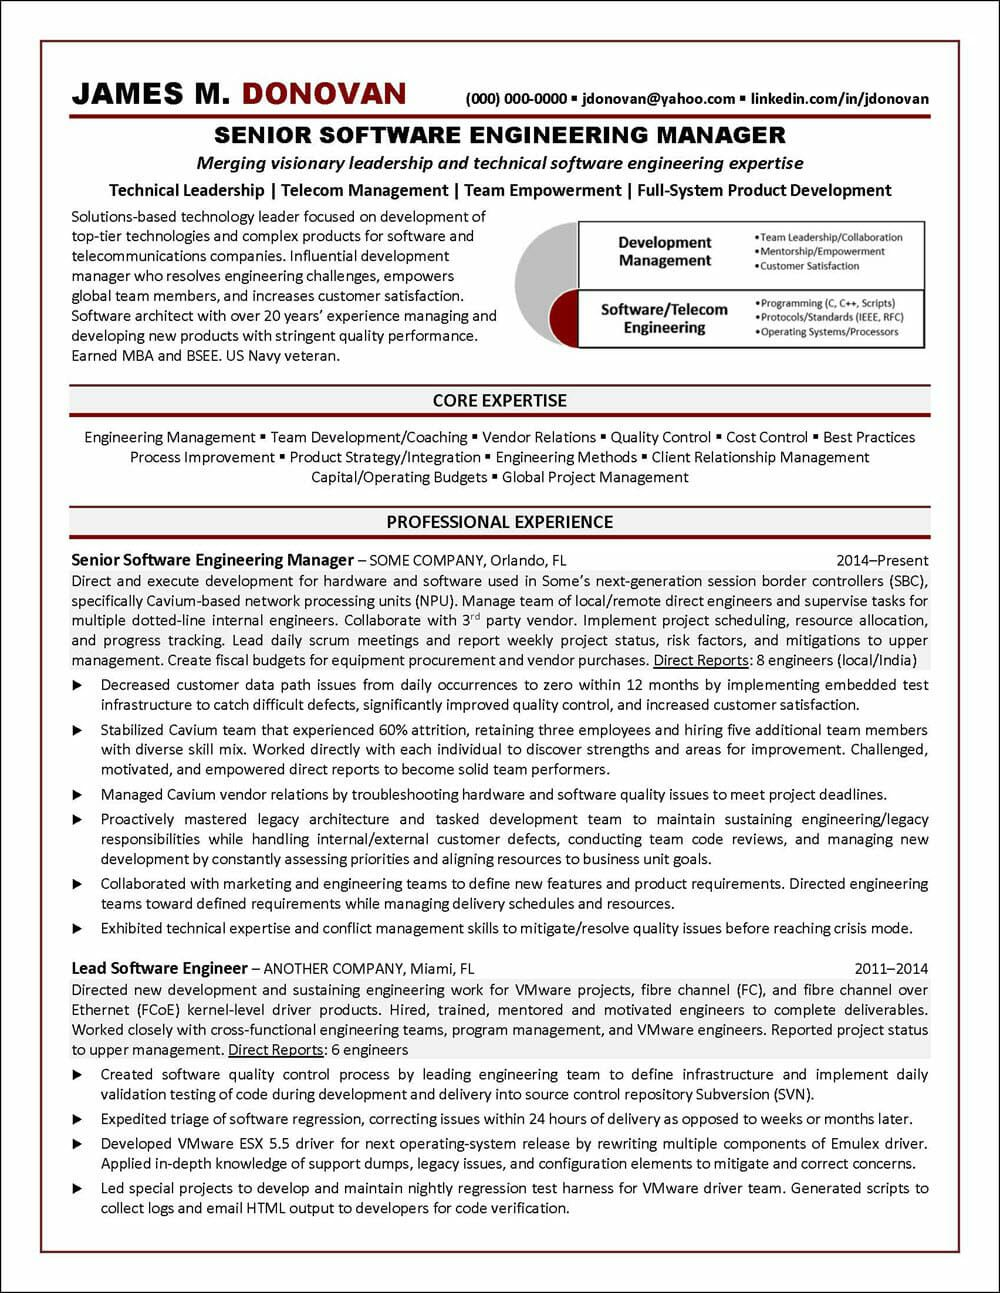 Software Engineer Resume Example Distinctive Career Services Project Manager Resume Job Resume Examples Resume Examples